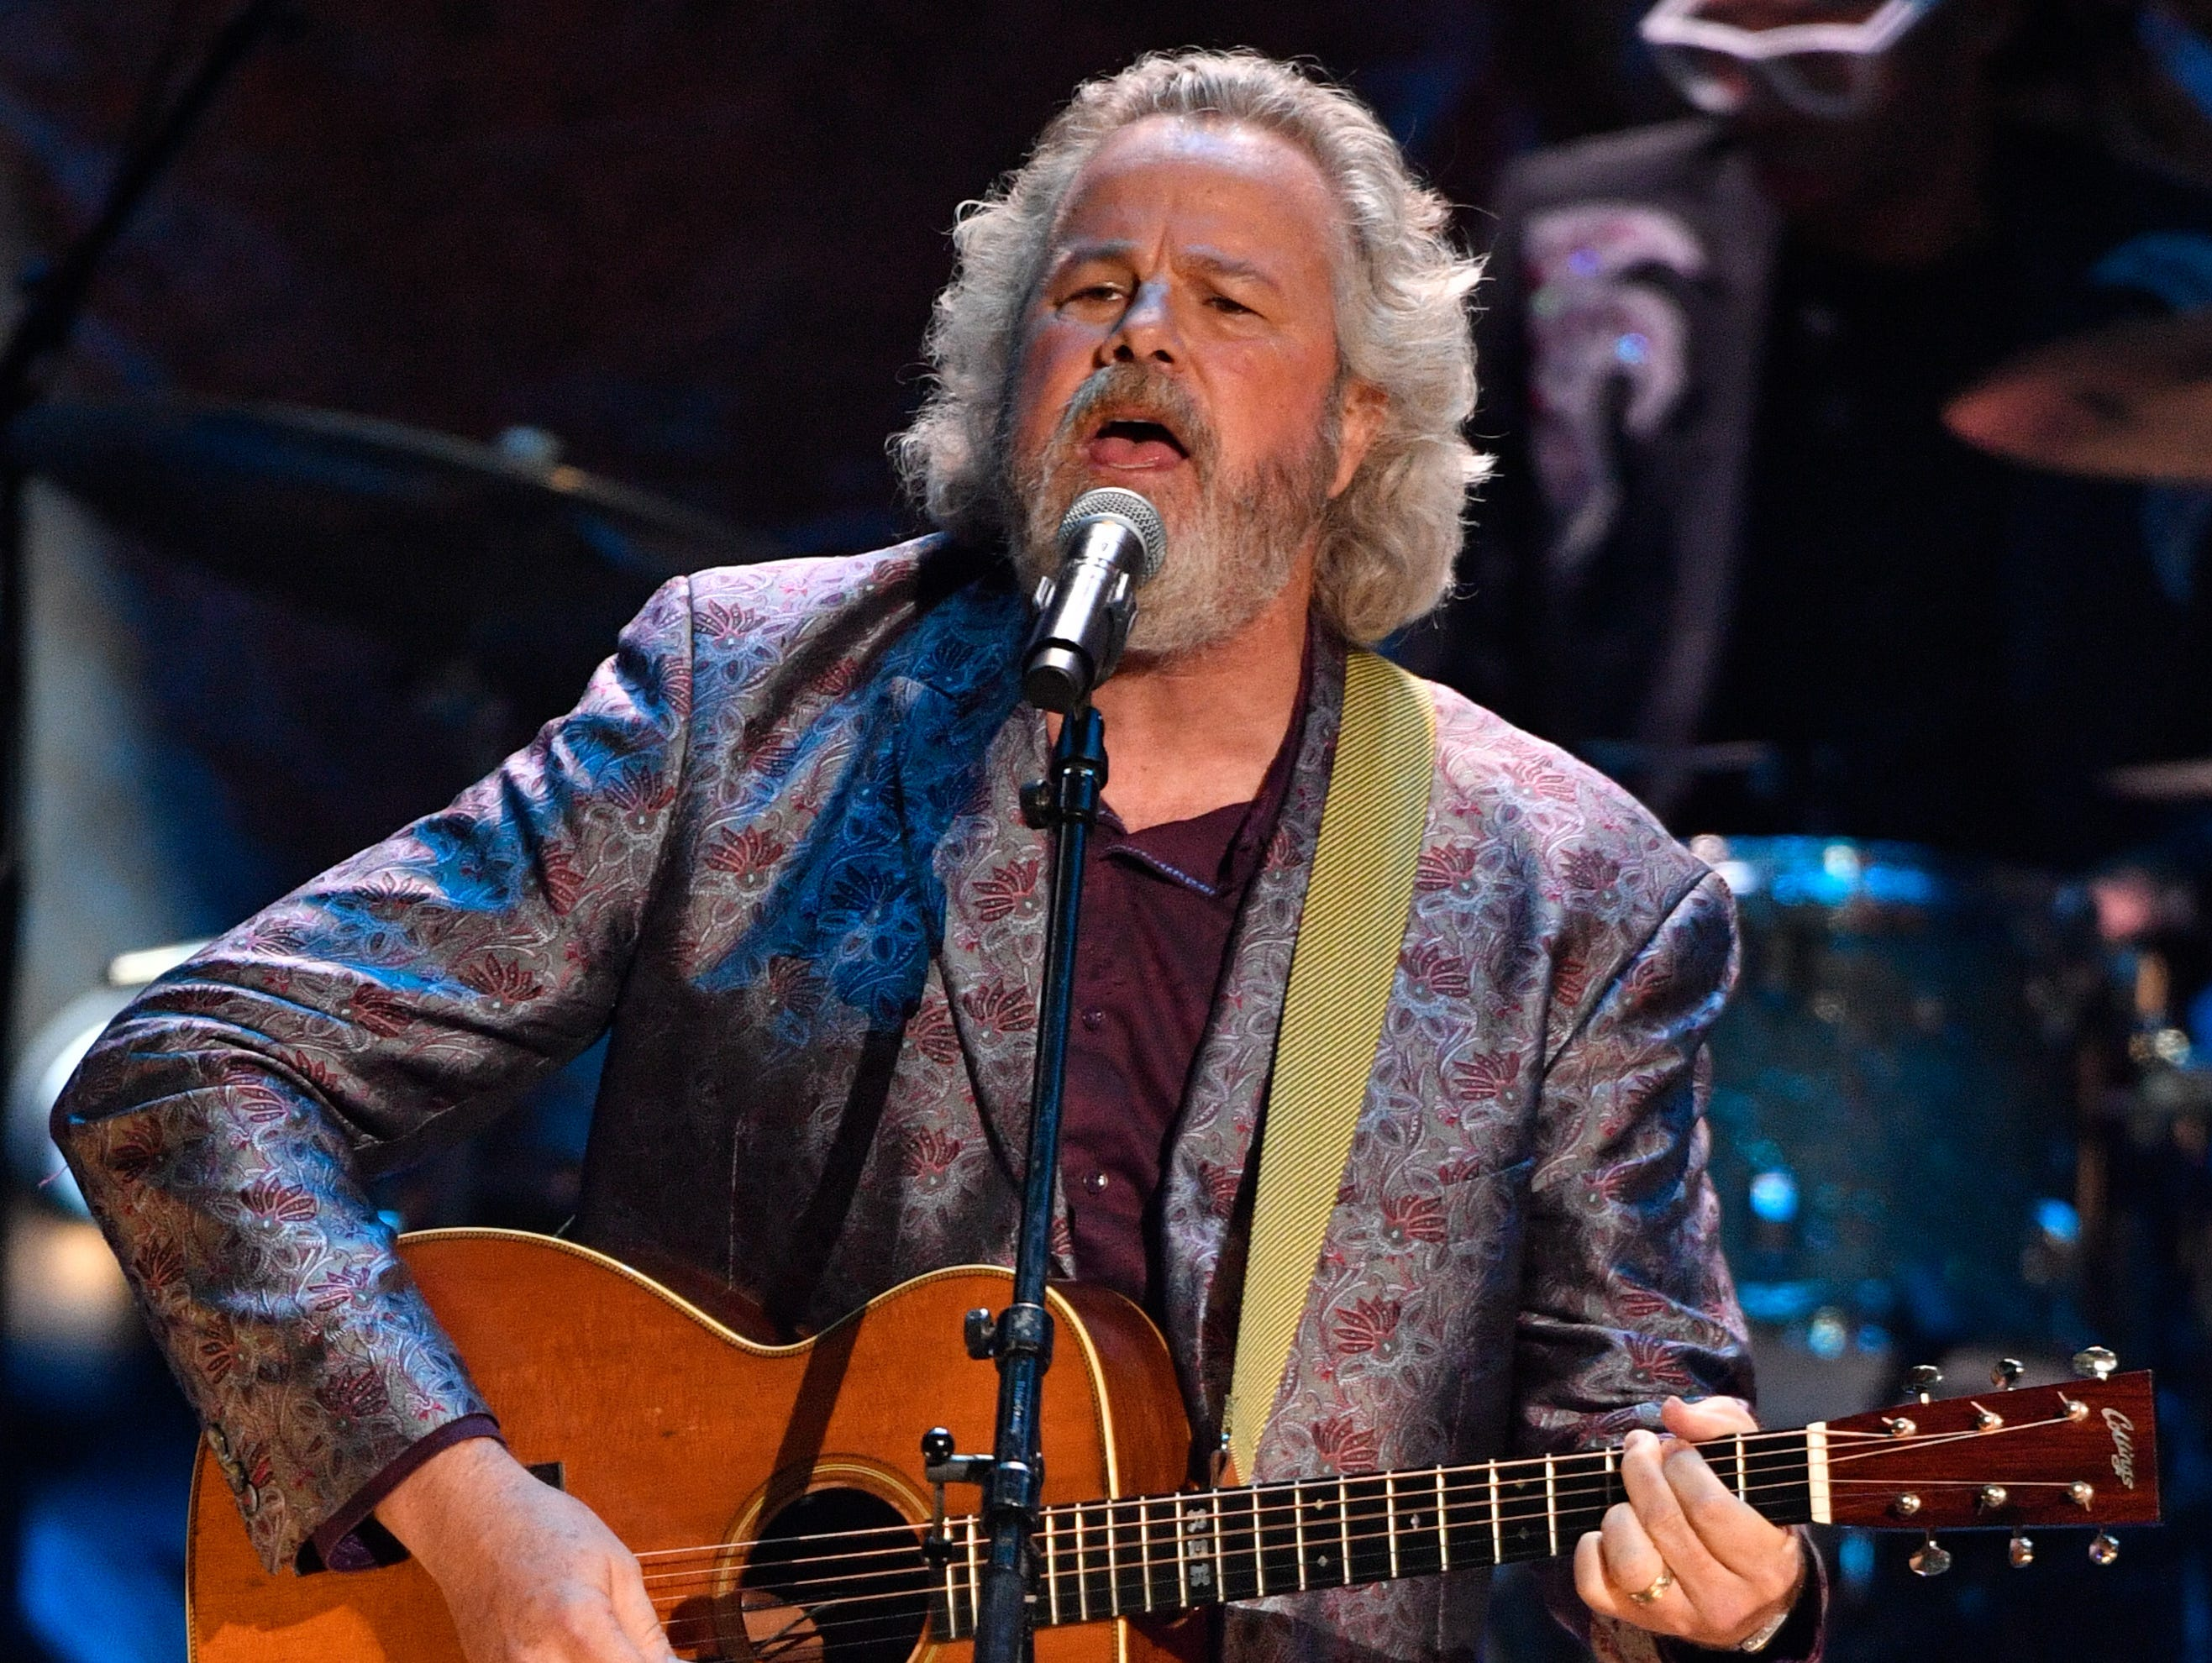 Robert Earl Keen performs during the 2018 Americana Honors and Awards show at the Ryman Auditorium in Nashville, Tenn., Wednesday, Sept. 12, 2018.